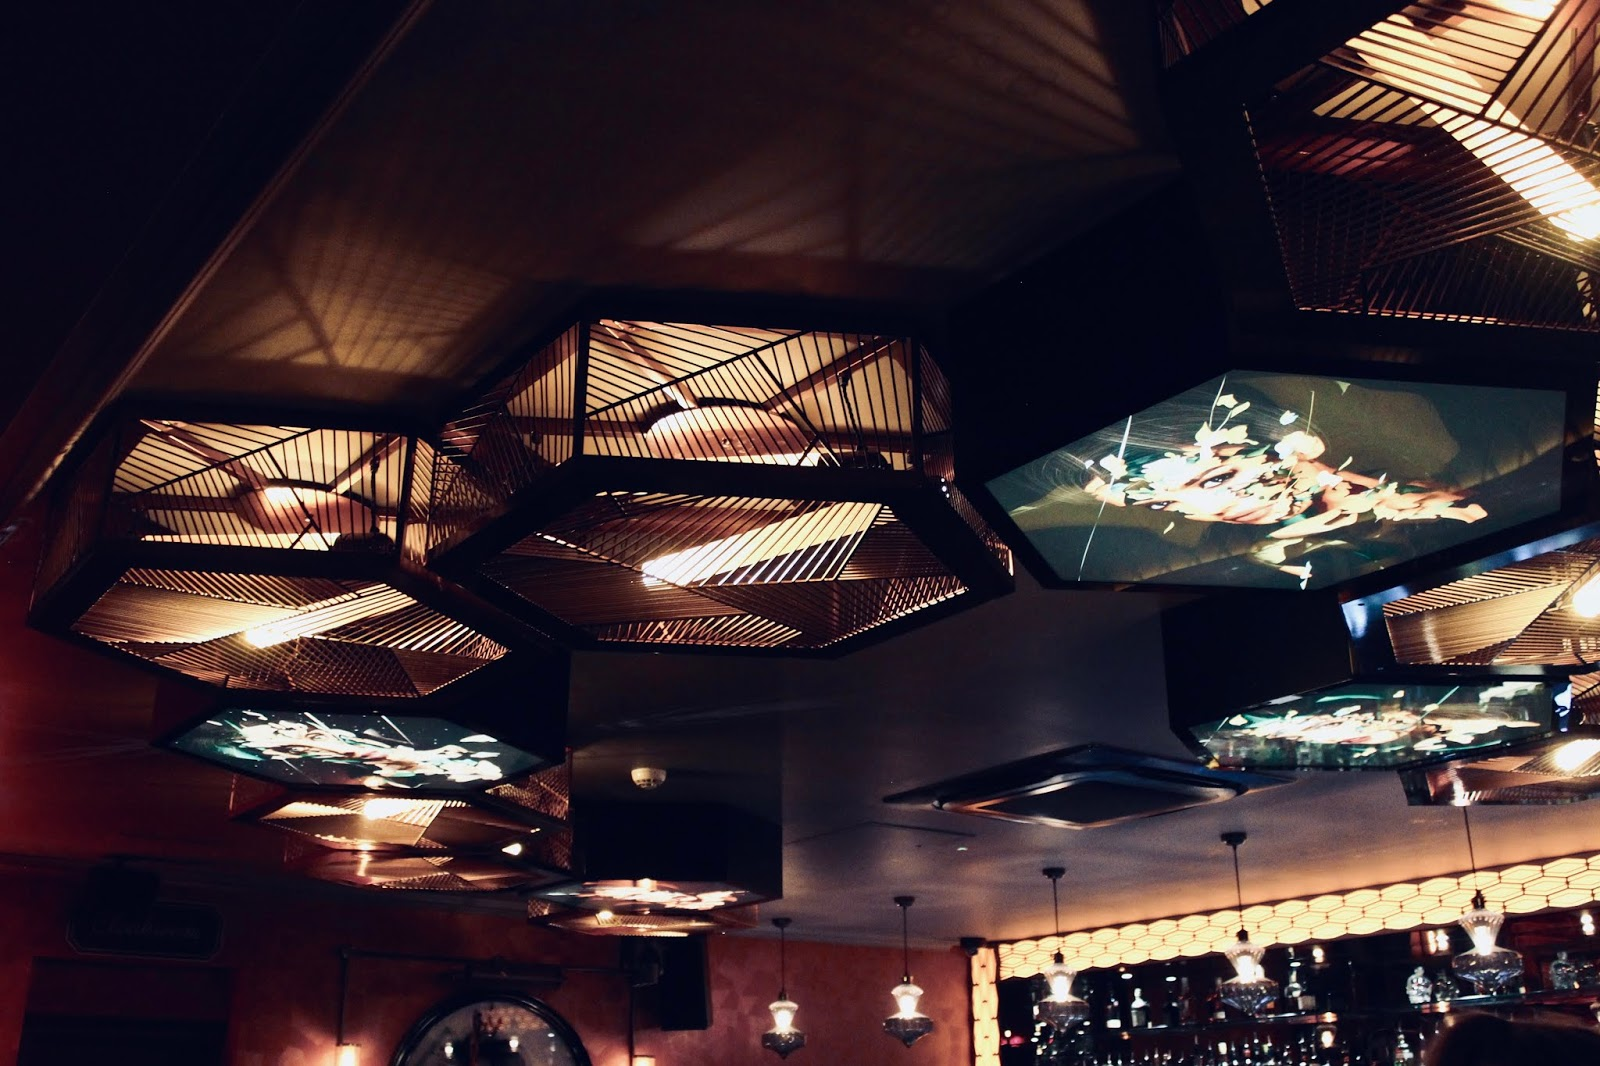 Ceiling with lights on in dirty martini